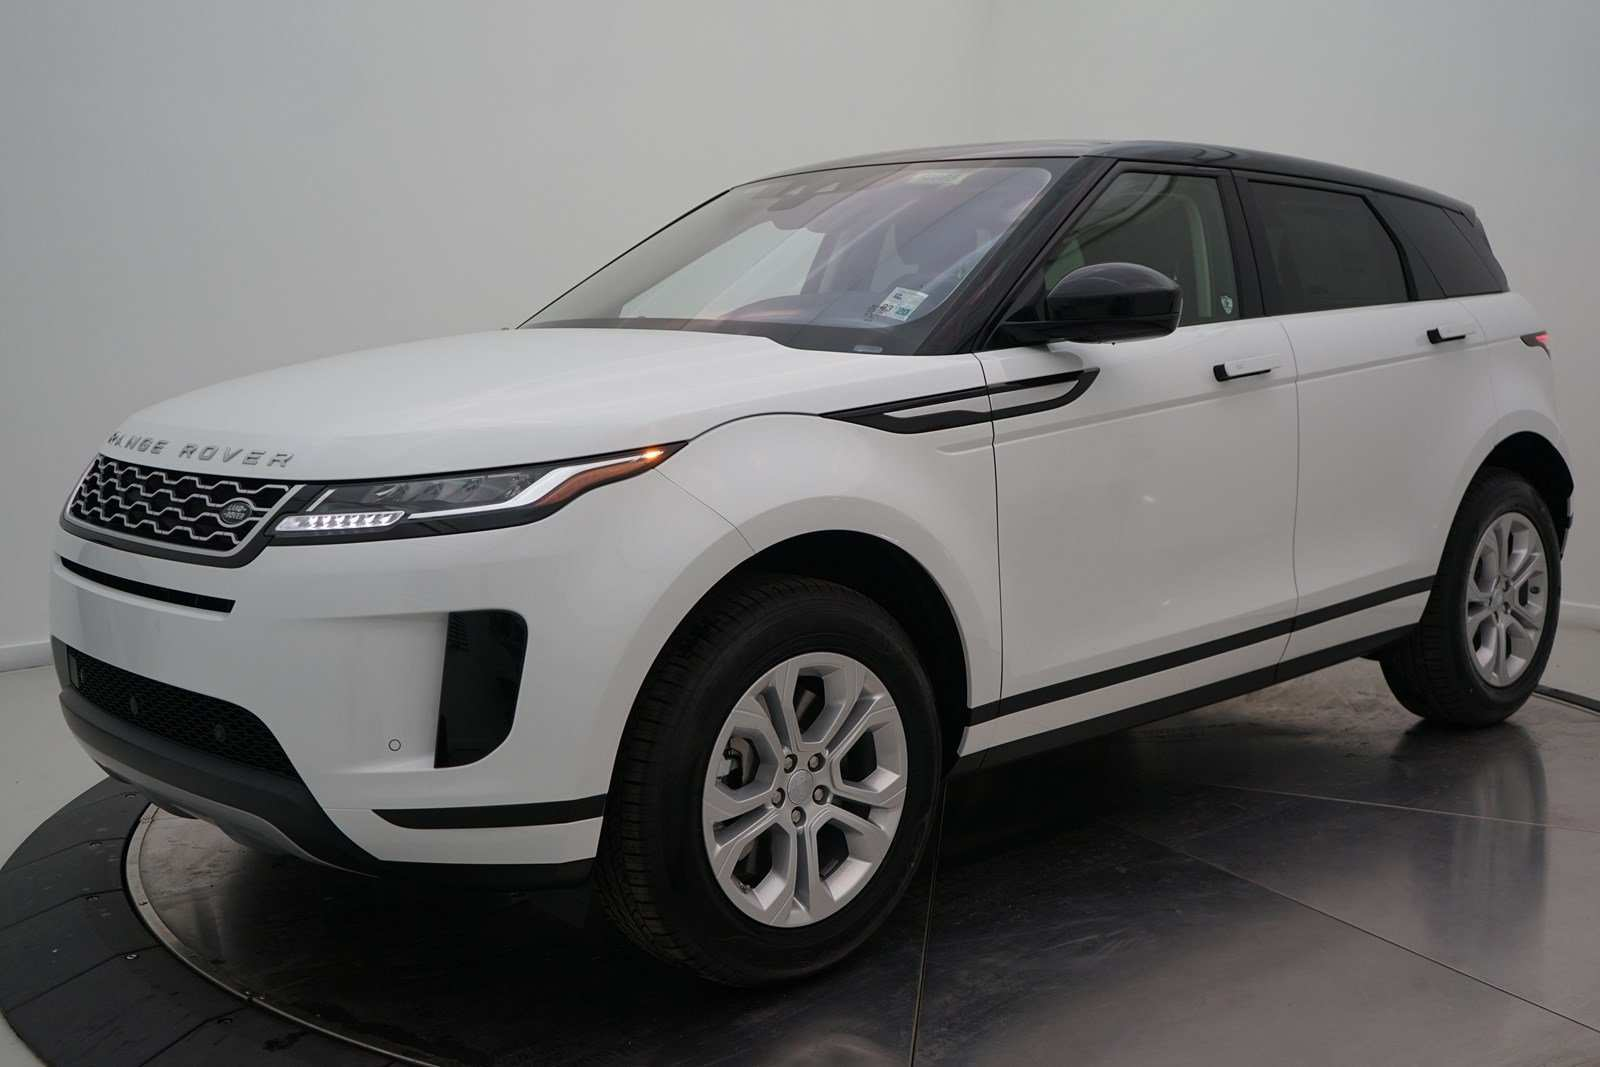 26 New 2020 Range Rover Evoque Xl Interior